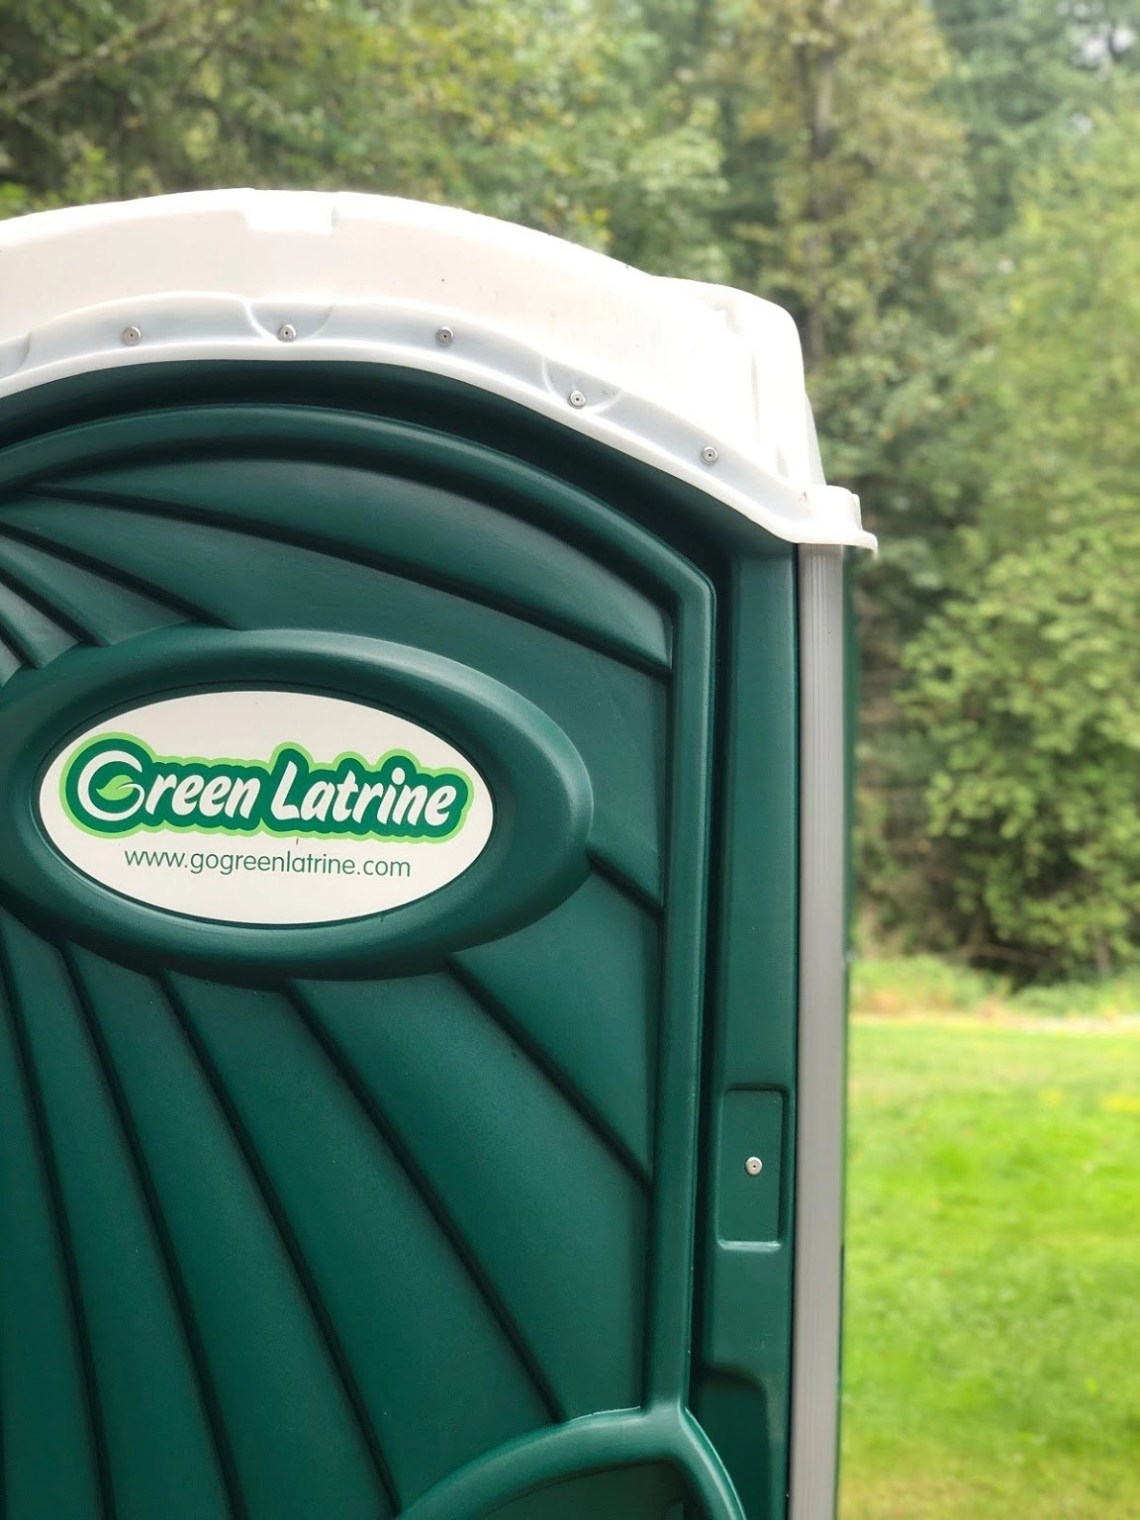 Close up picture of a Green Latrine and some pacific northwest greenery